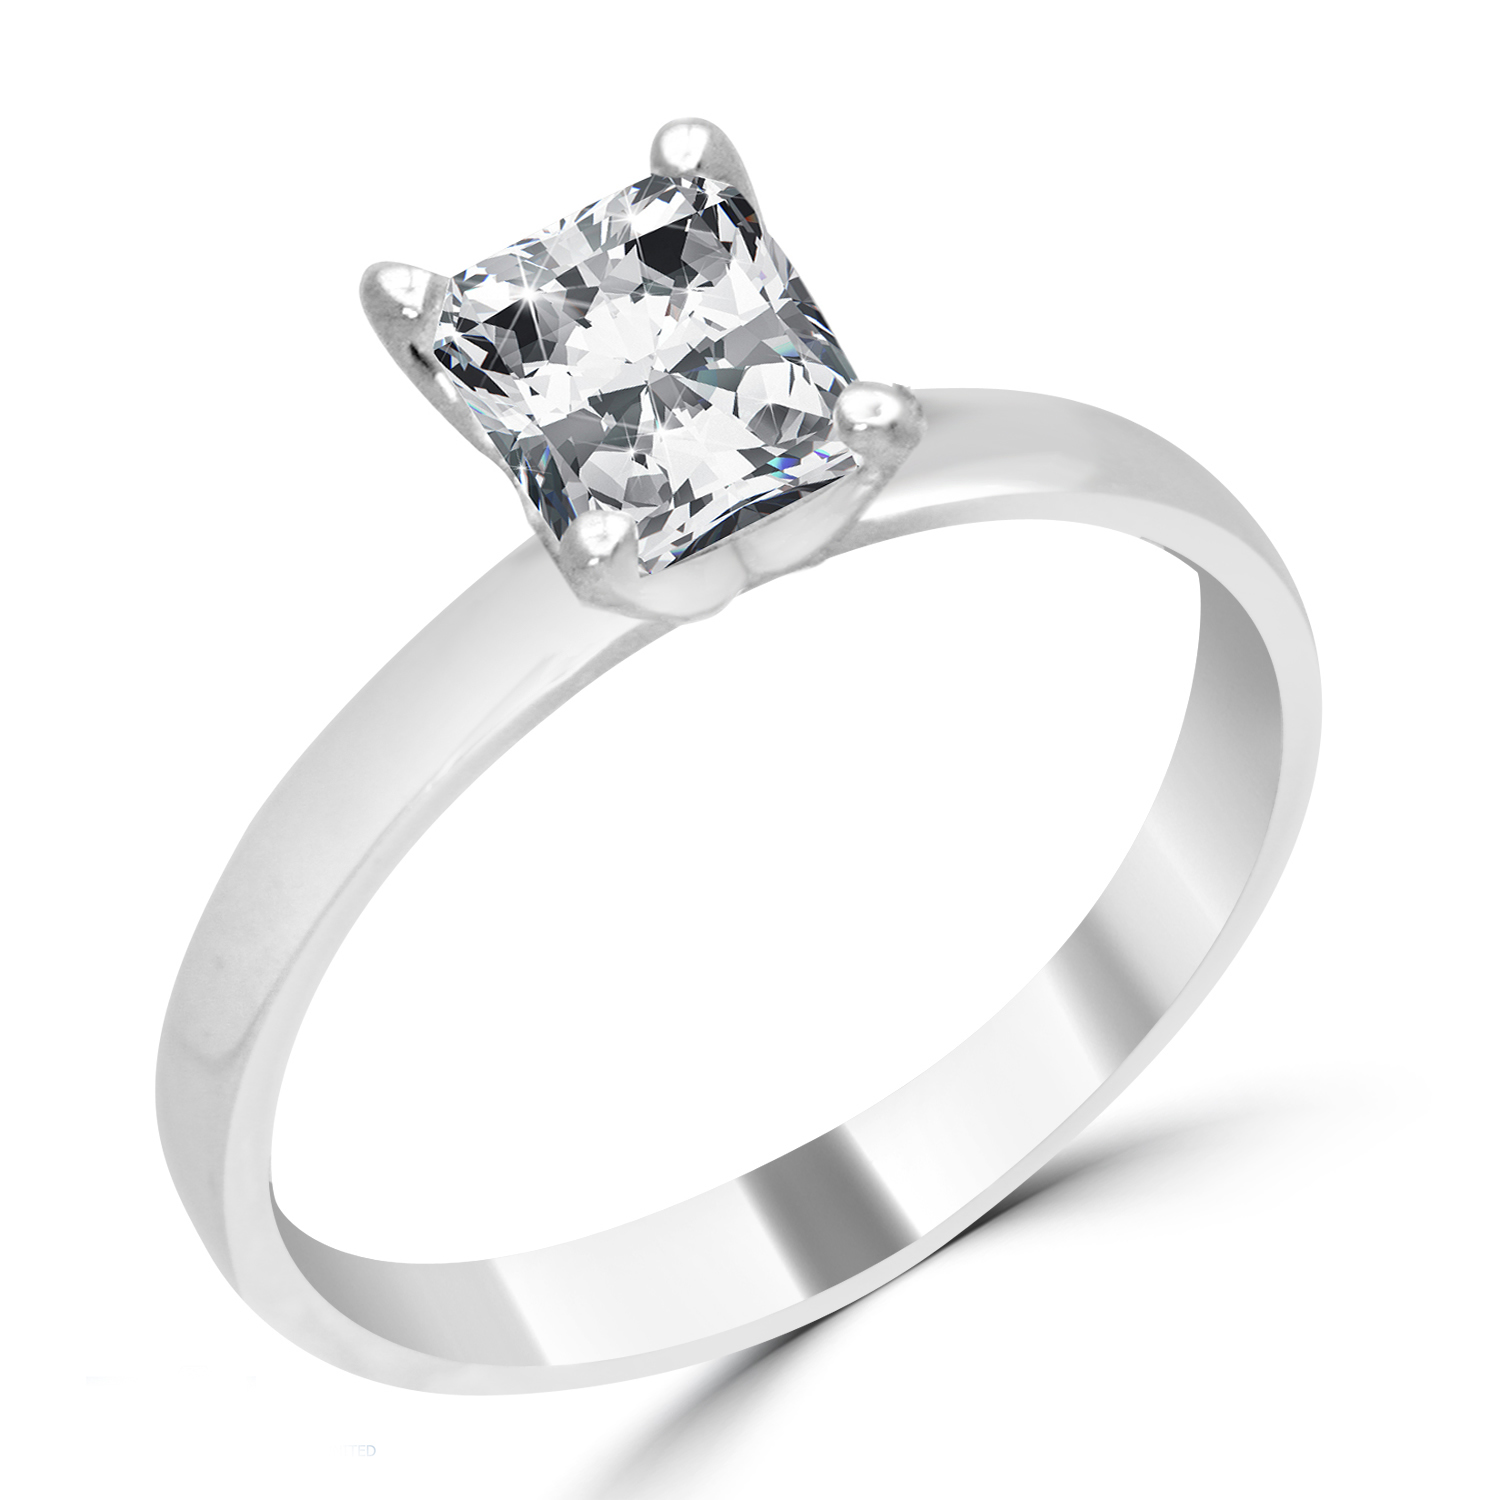 Radiant Reflections Diamond Ring 1 Ct Tw 14k White Gold: 1.27 Ct Radiant Cut Diamond Engagement Ring SI3/D 14K